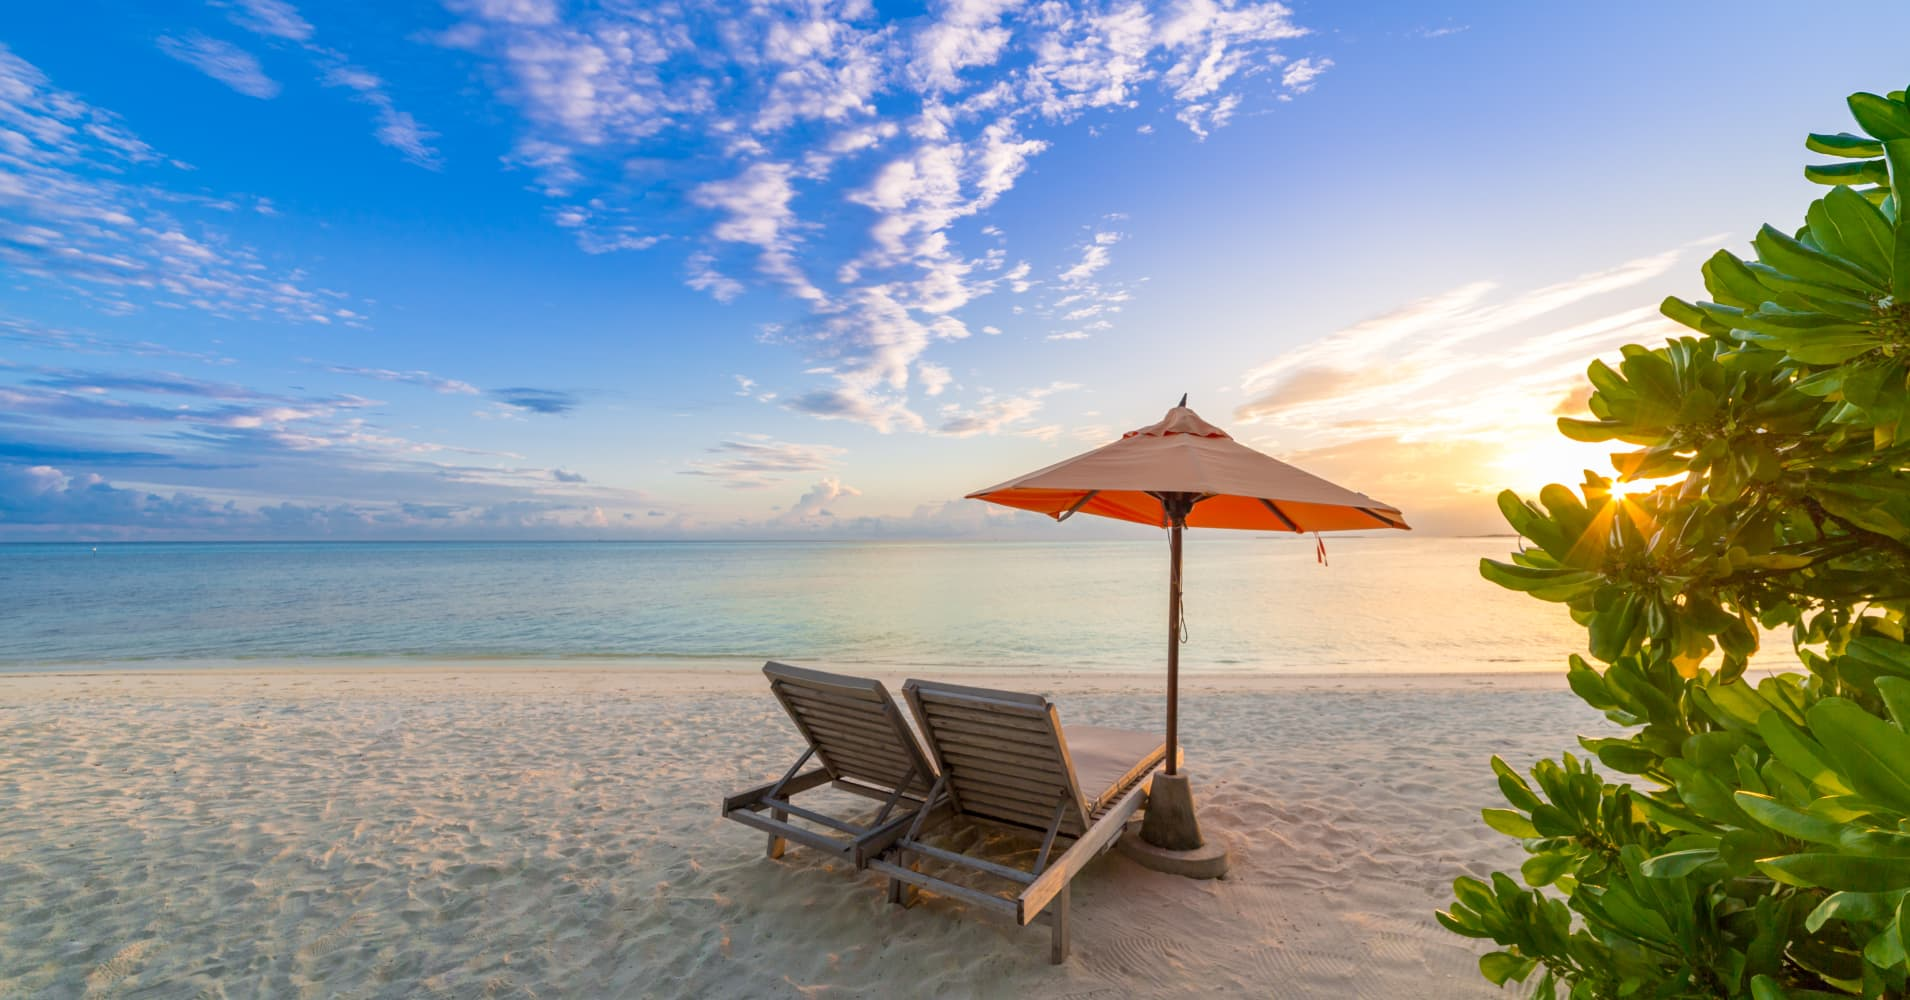 black friday and cyber monday are great for travel and vacation sales